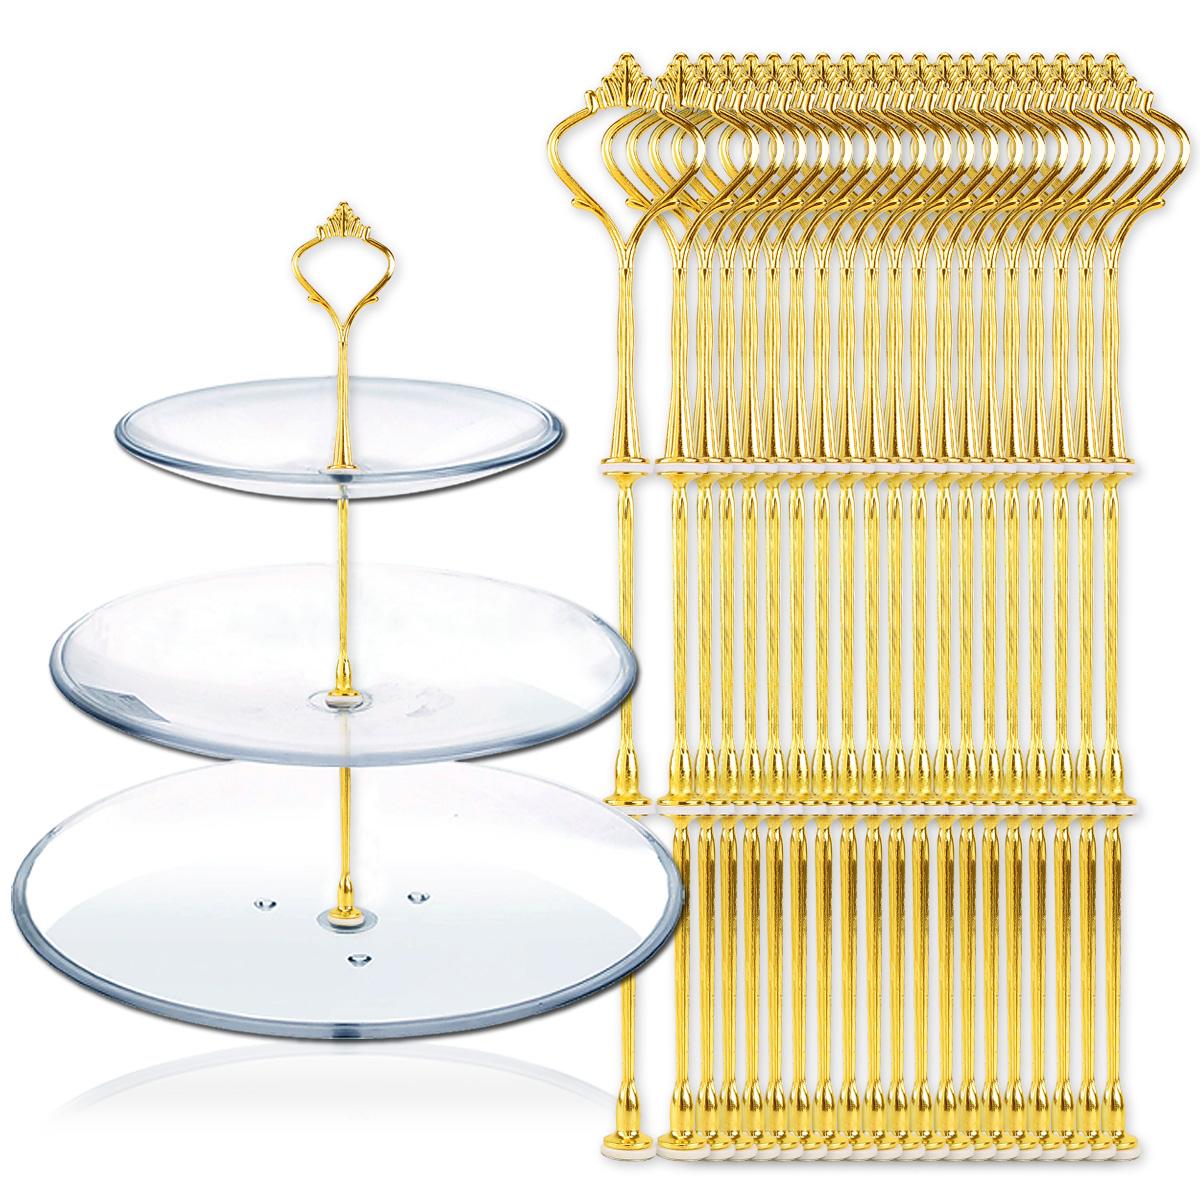 20pcs 3 Tier Vintage Crown Wedding Cake Plate Tiered Stand